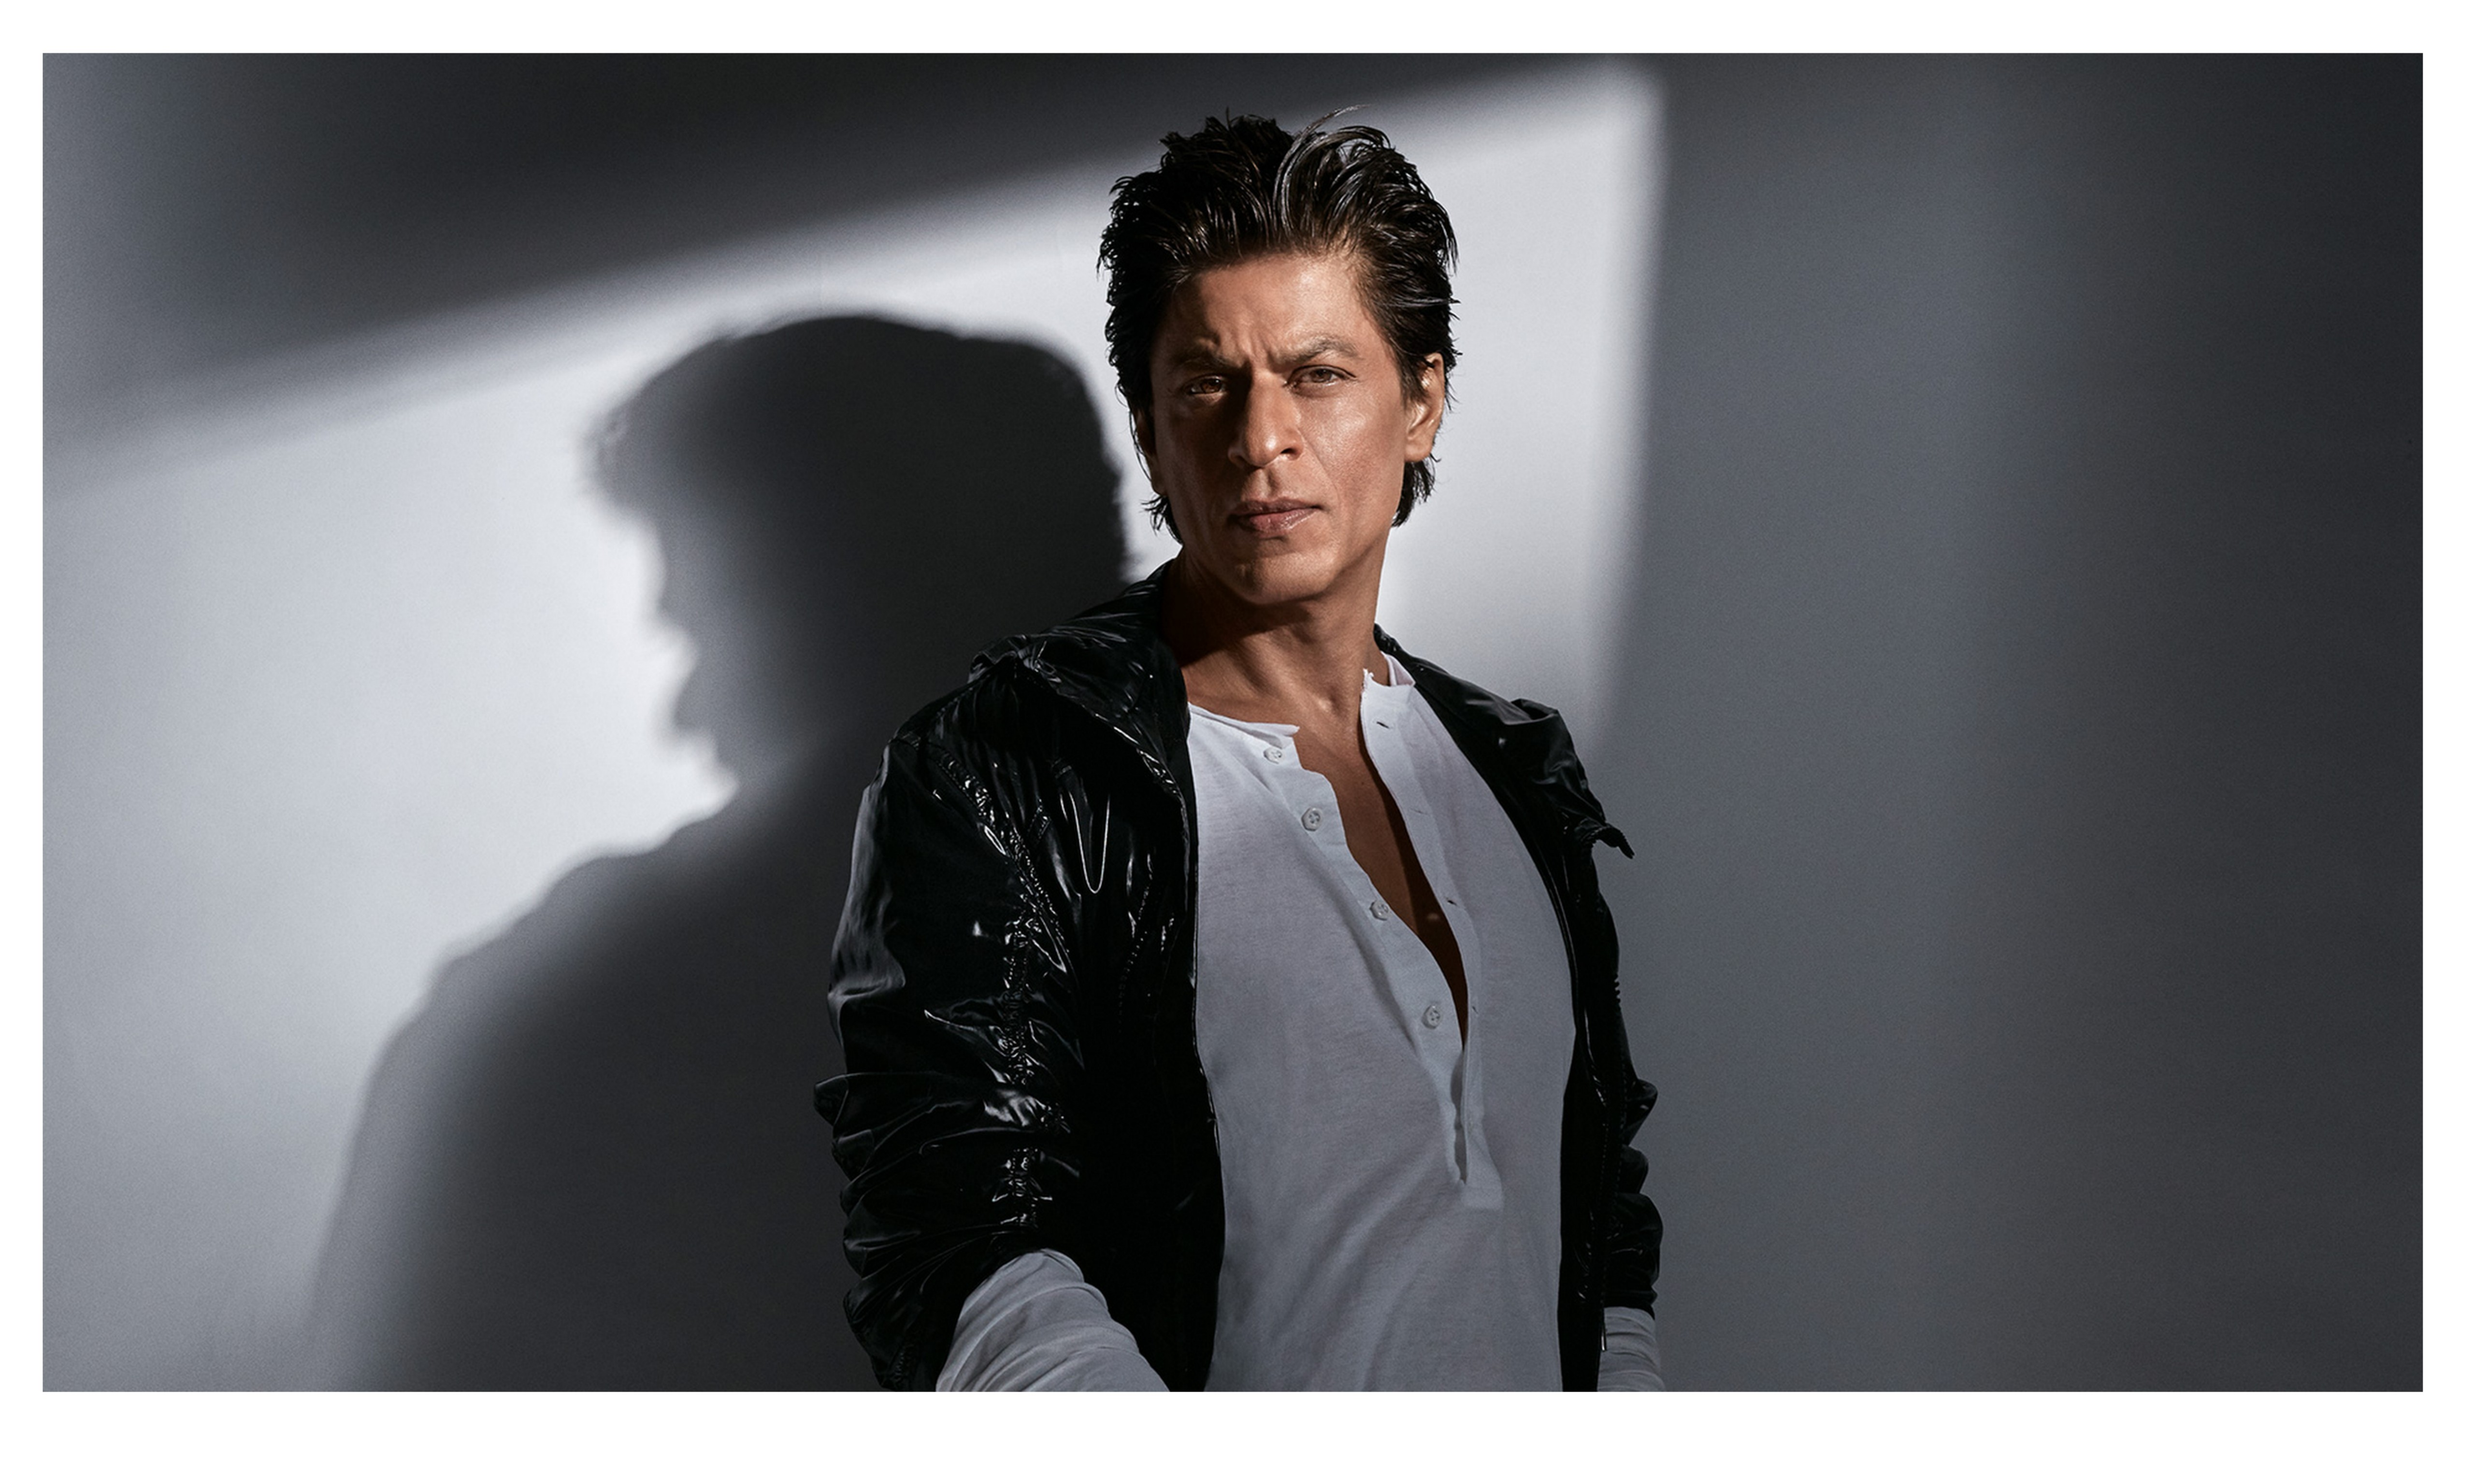 Wanted to be a part of 'Itteaq' as actor: Shah Rukh Khan!